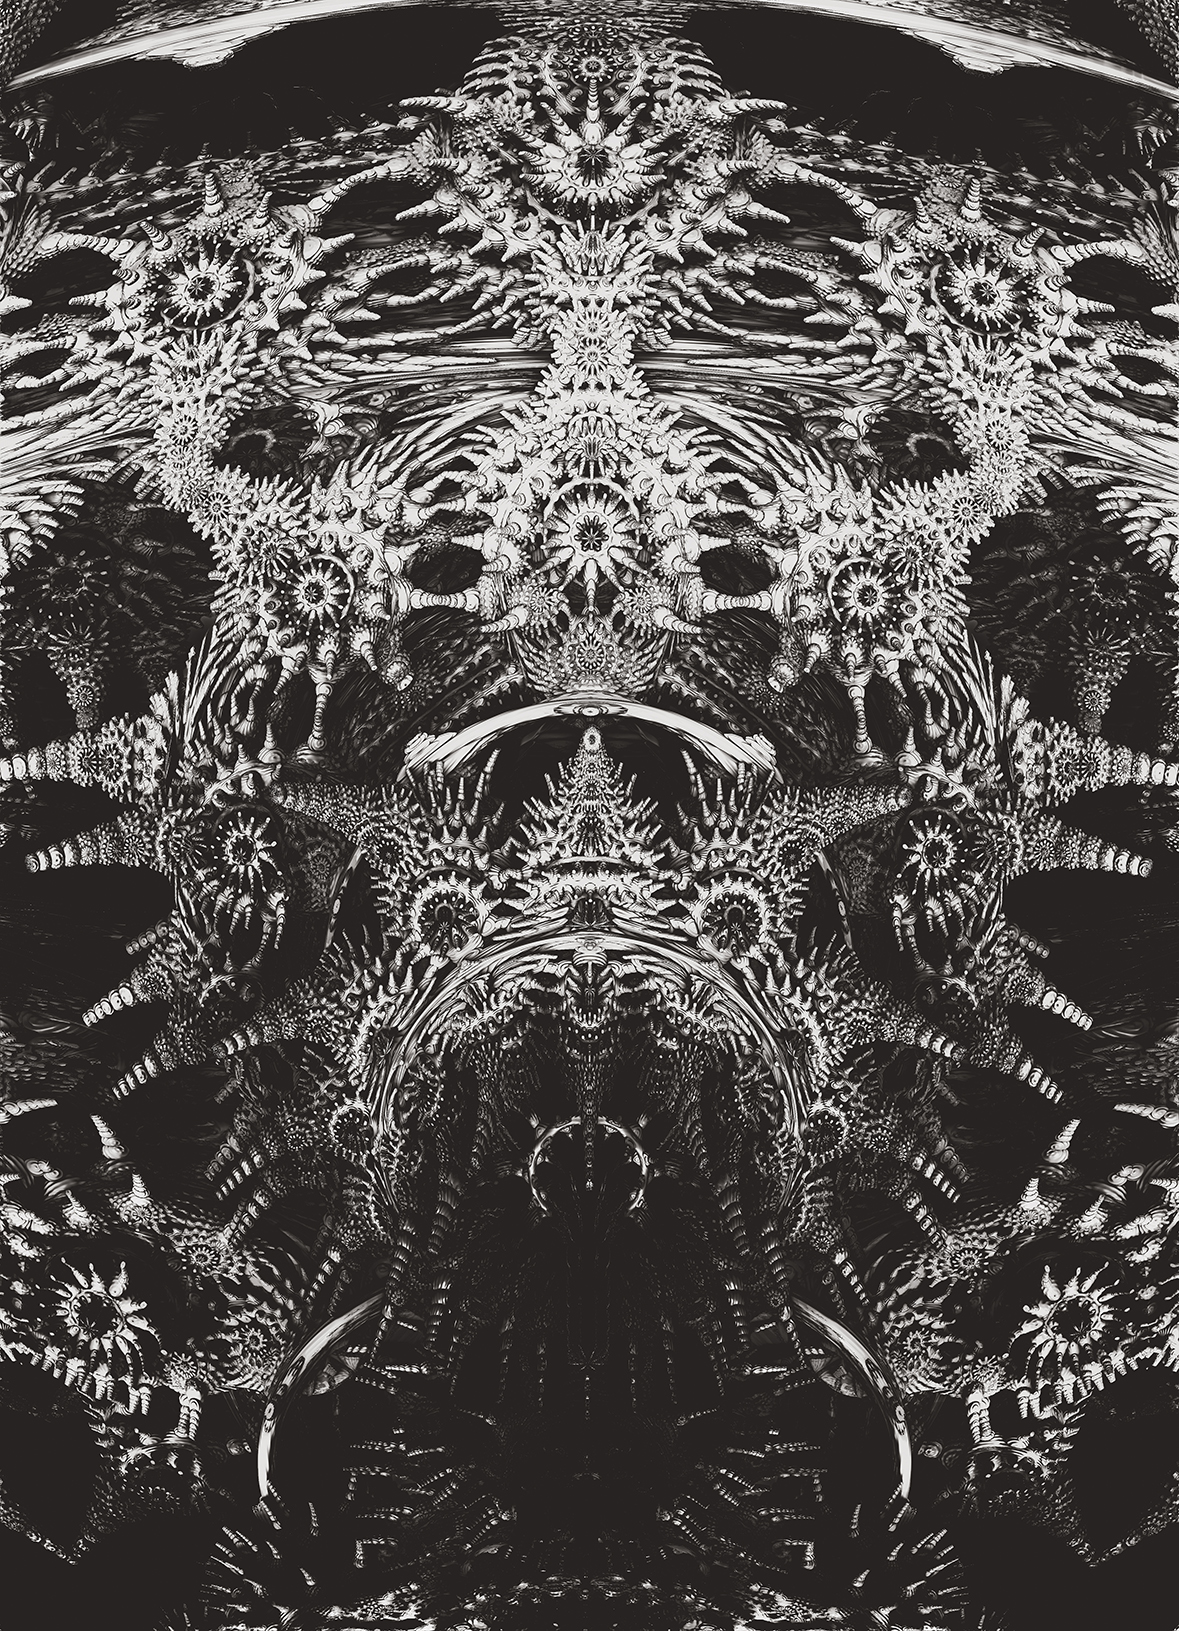 Emperor. Black and White Abstract Art.